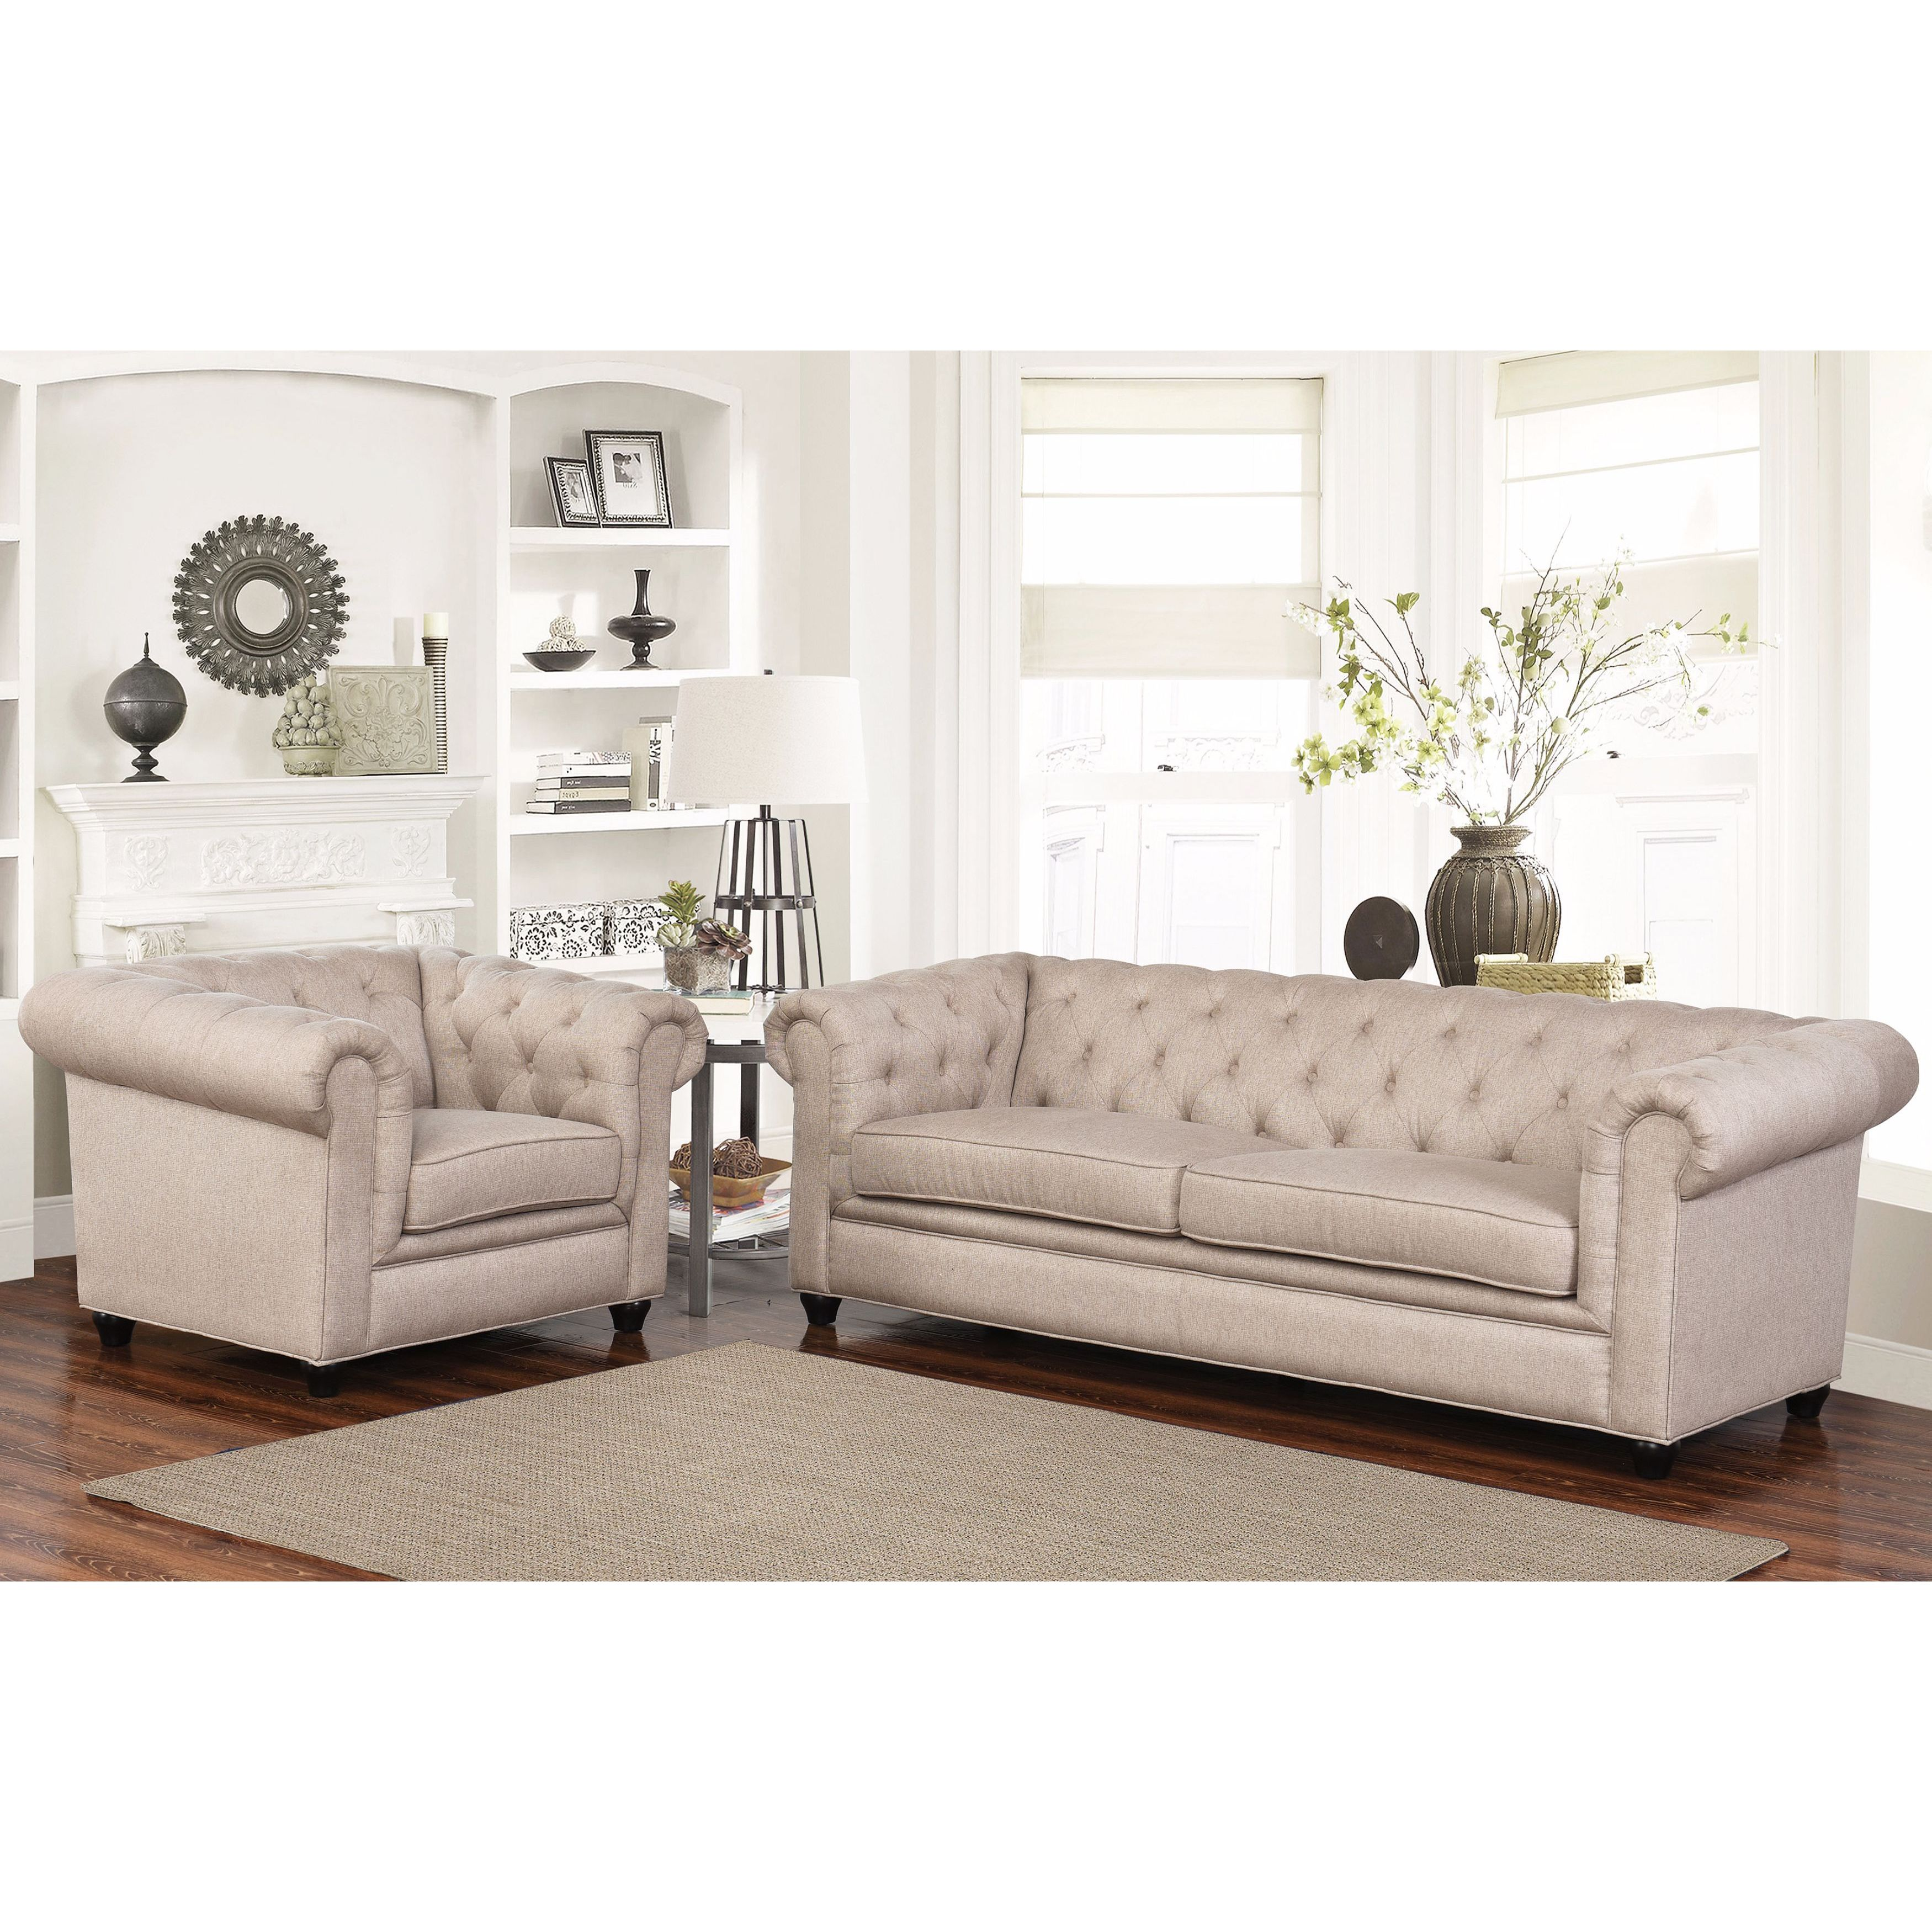 Abbyson Tuscan Beige Chesterfield Fabric 2 Piece Living Room Set ...